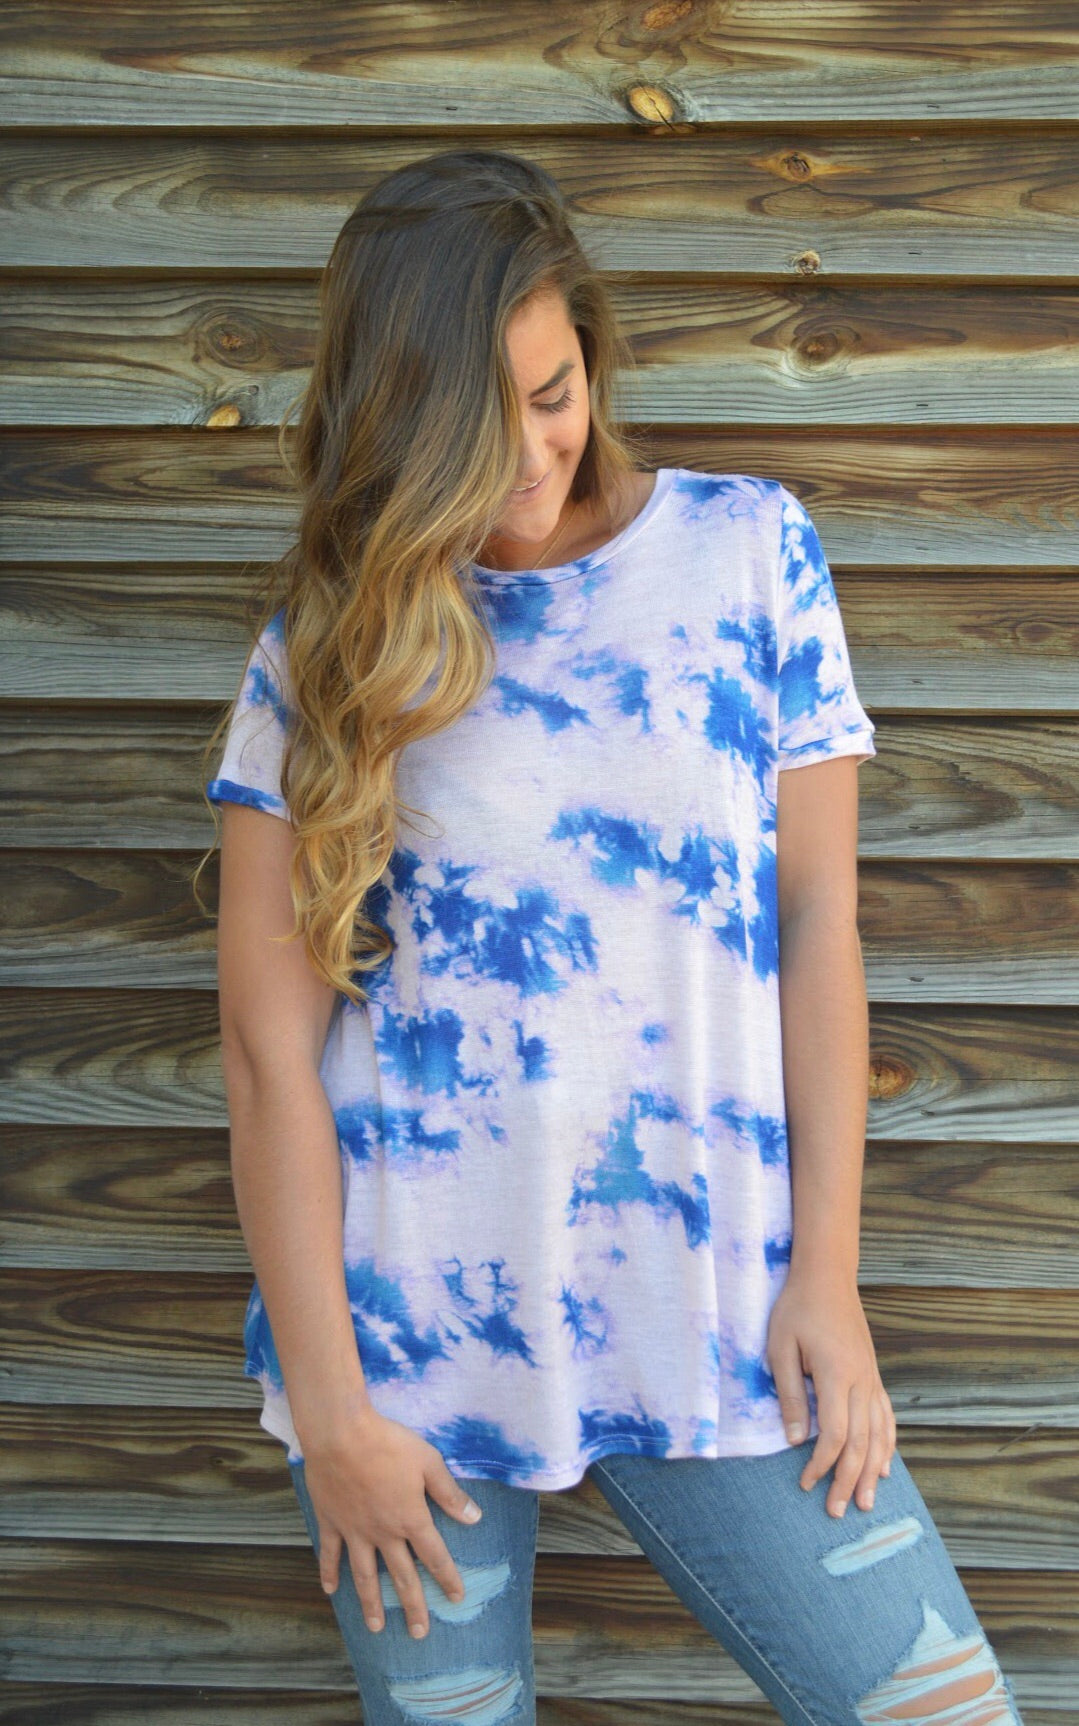 Cotton Candy Sky Tie Dye Tee